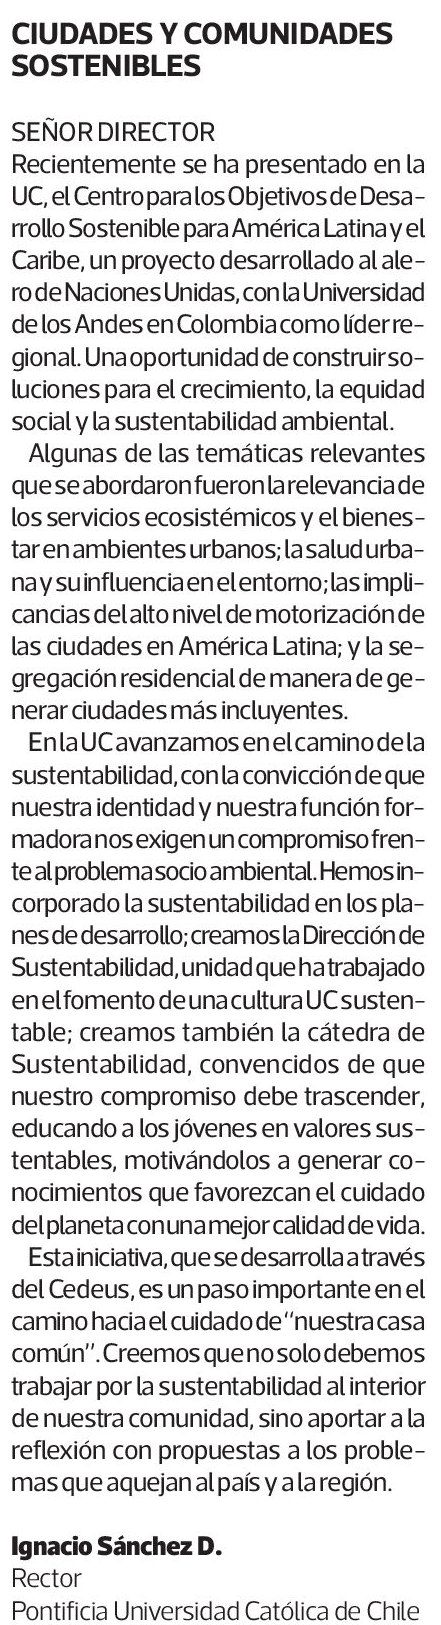 RectorSanchez_4mayo_LaTercera